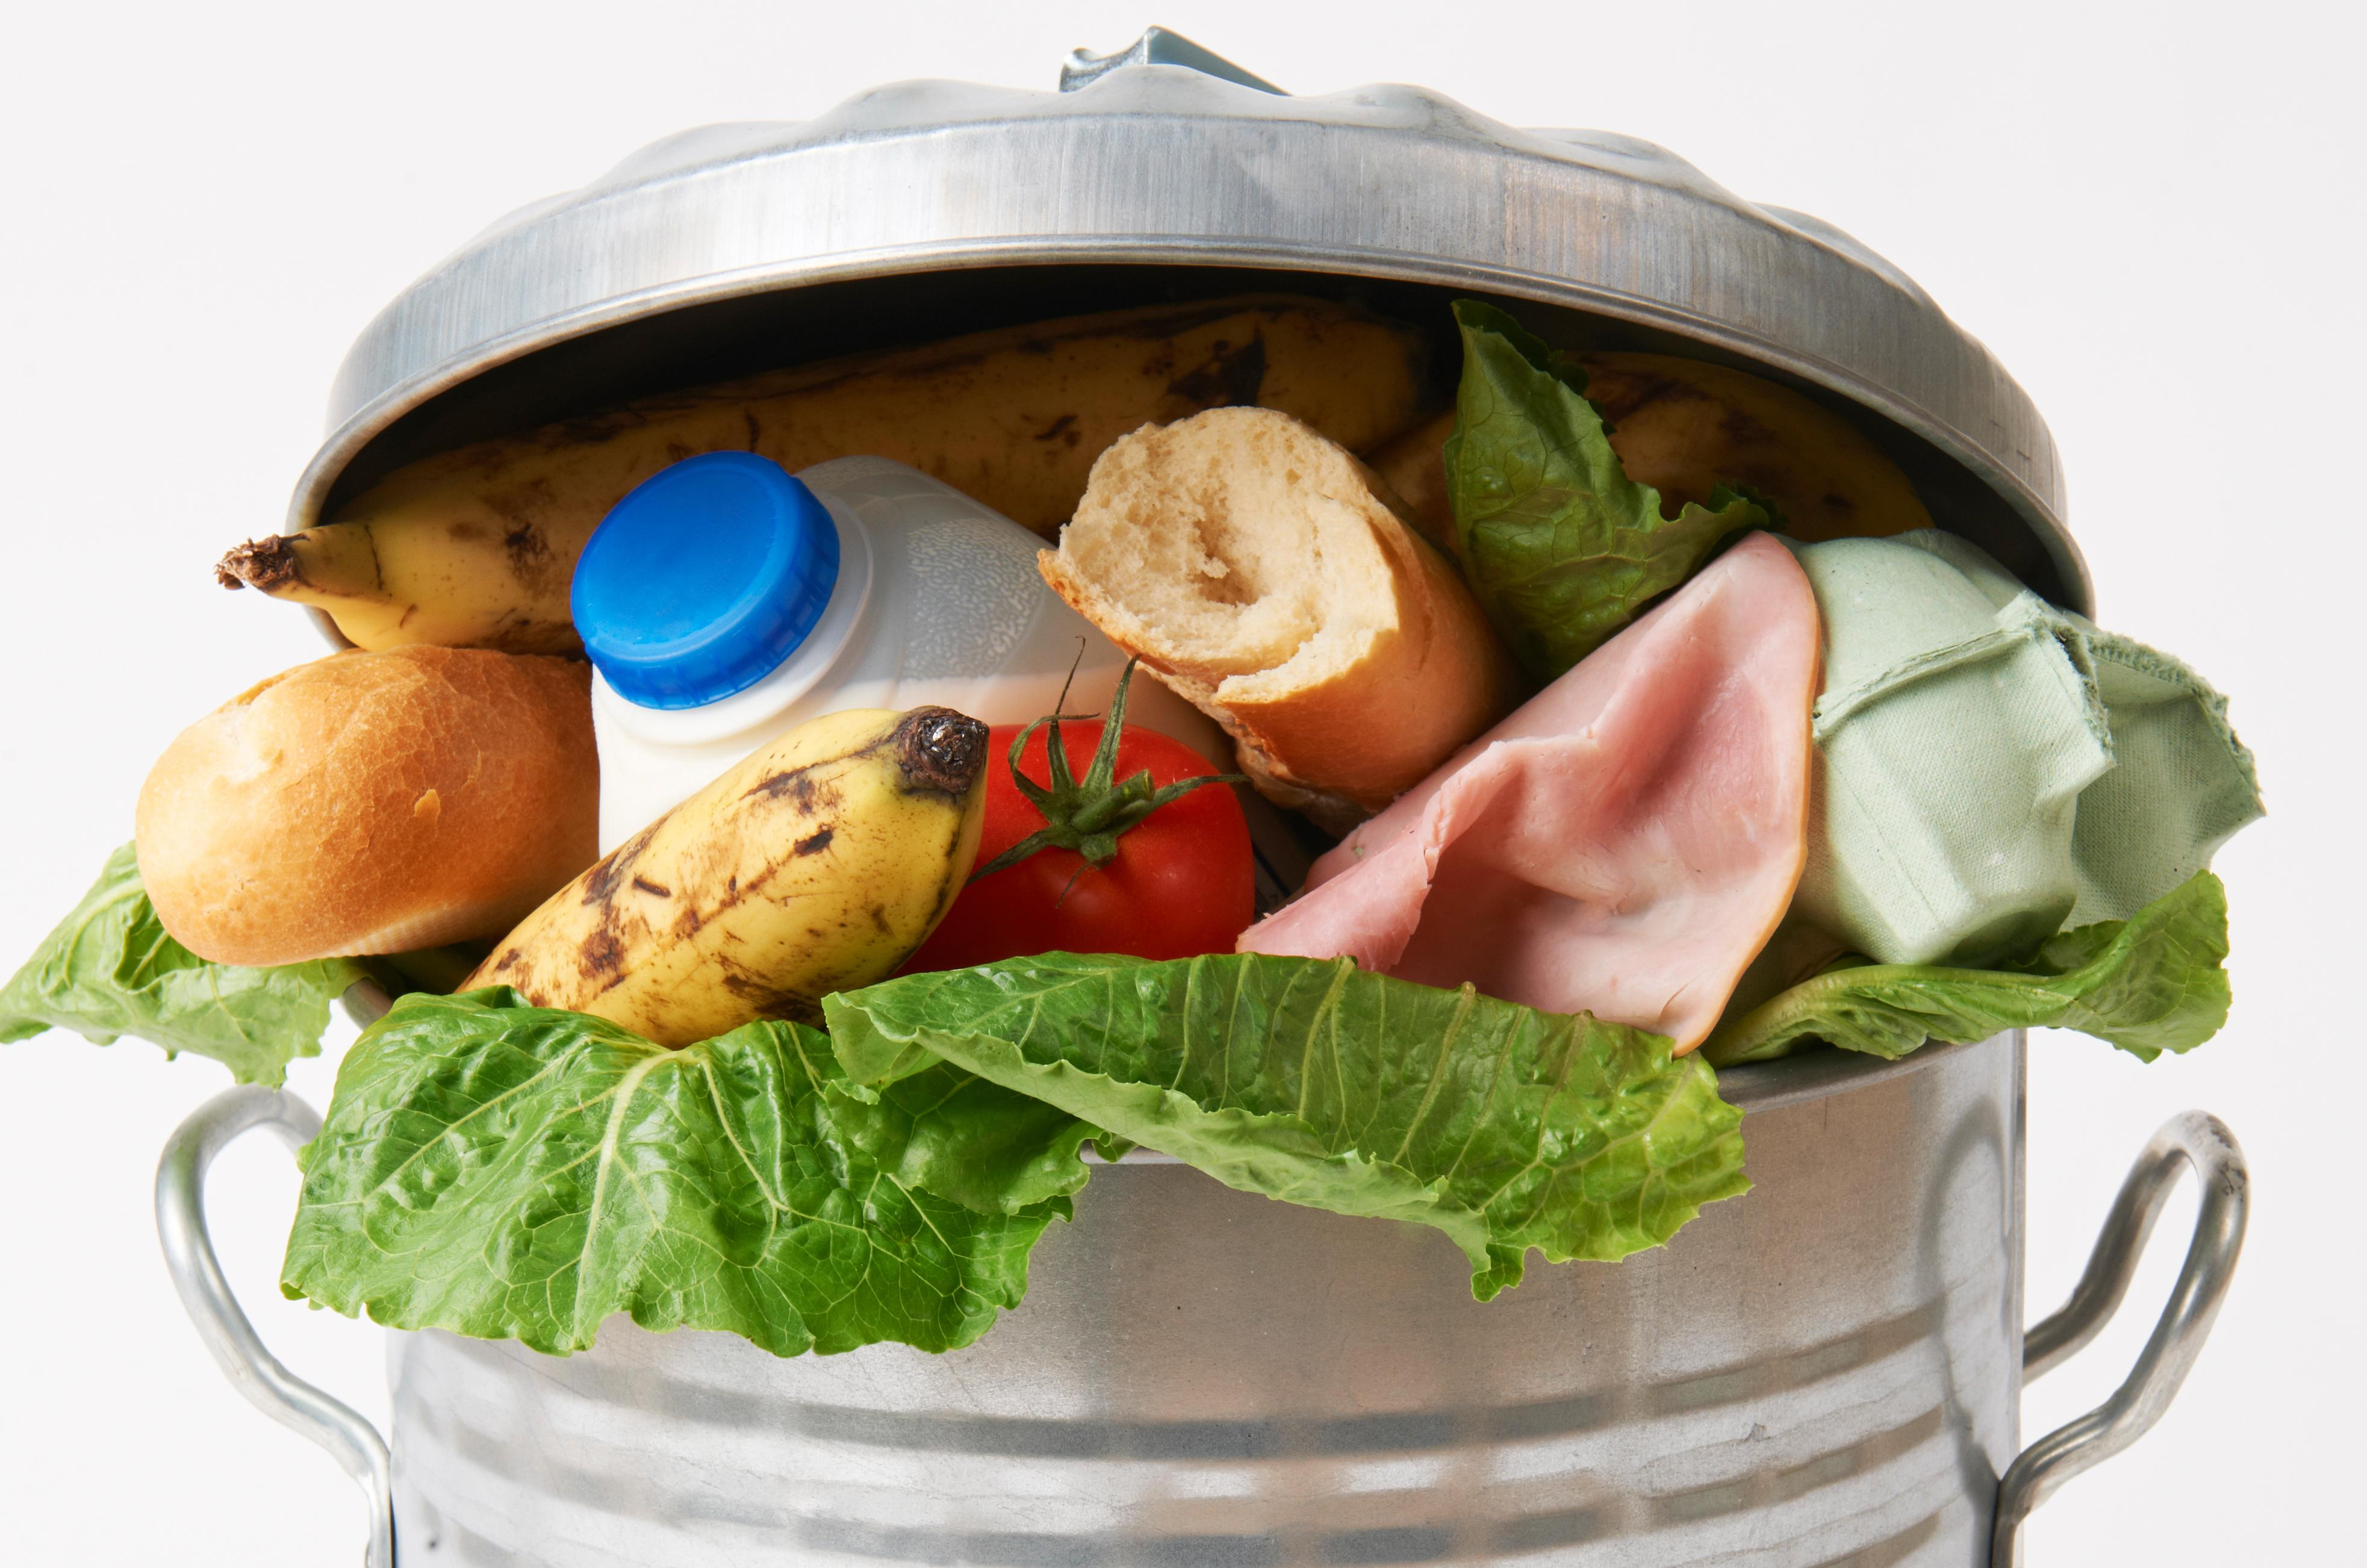 Experts measure food waste not in dollars or tons, but by